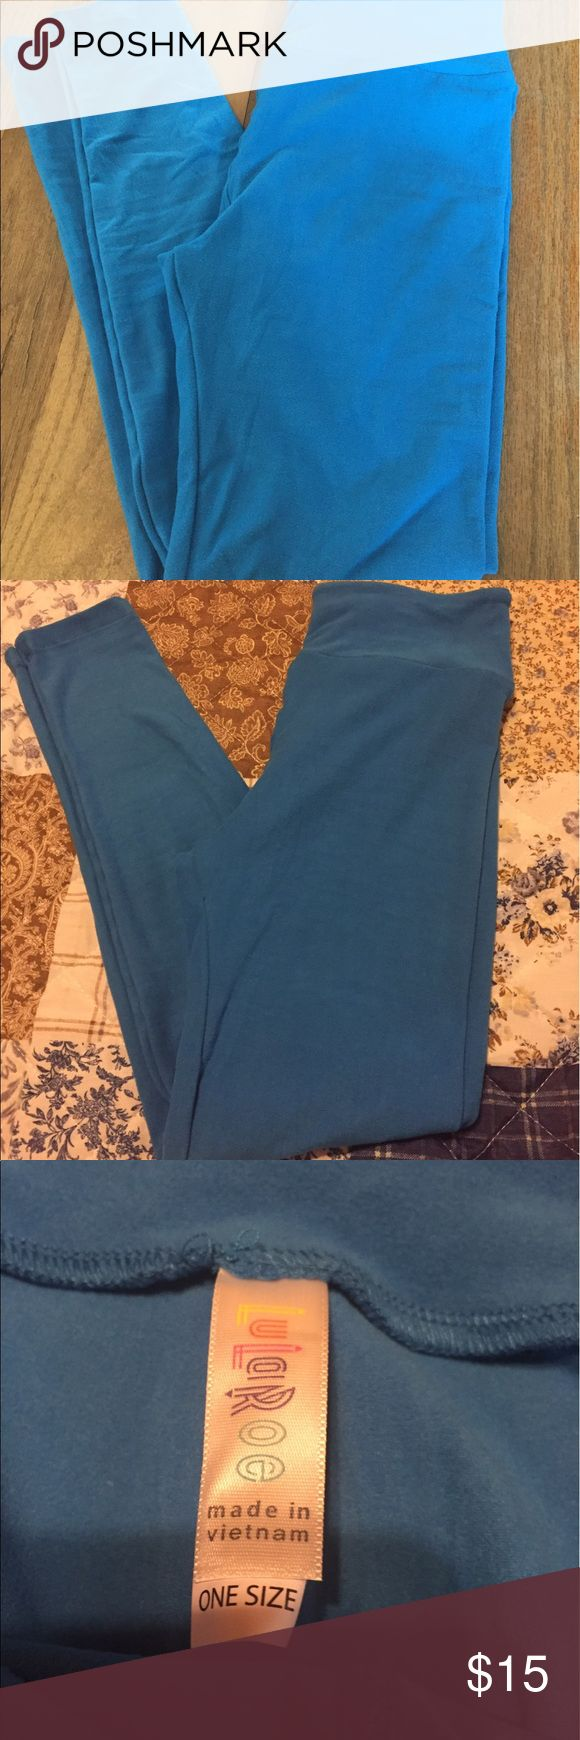 Lularoe bright blue leggings, NWOT, never worn Lularoe bright blue leggings, NWOT, never worn. I bought them and then never got a matching shirt. First pic is the correct color. Bright blue! I bought them to go with something and it didn't match LuLaRoe Pants Leggings